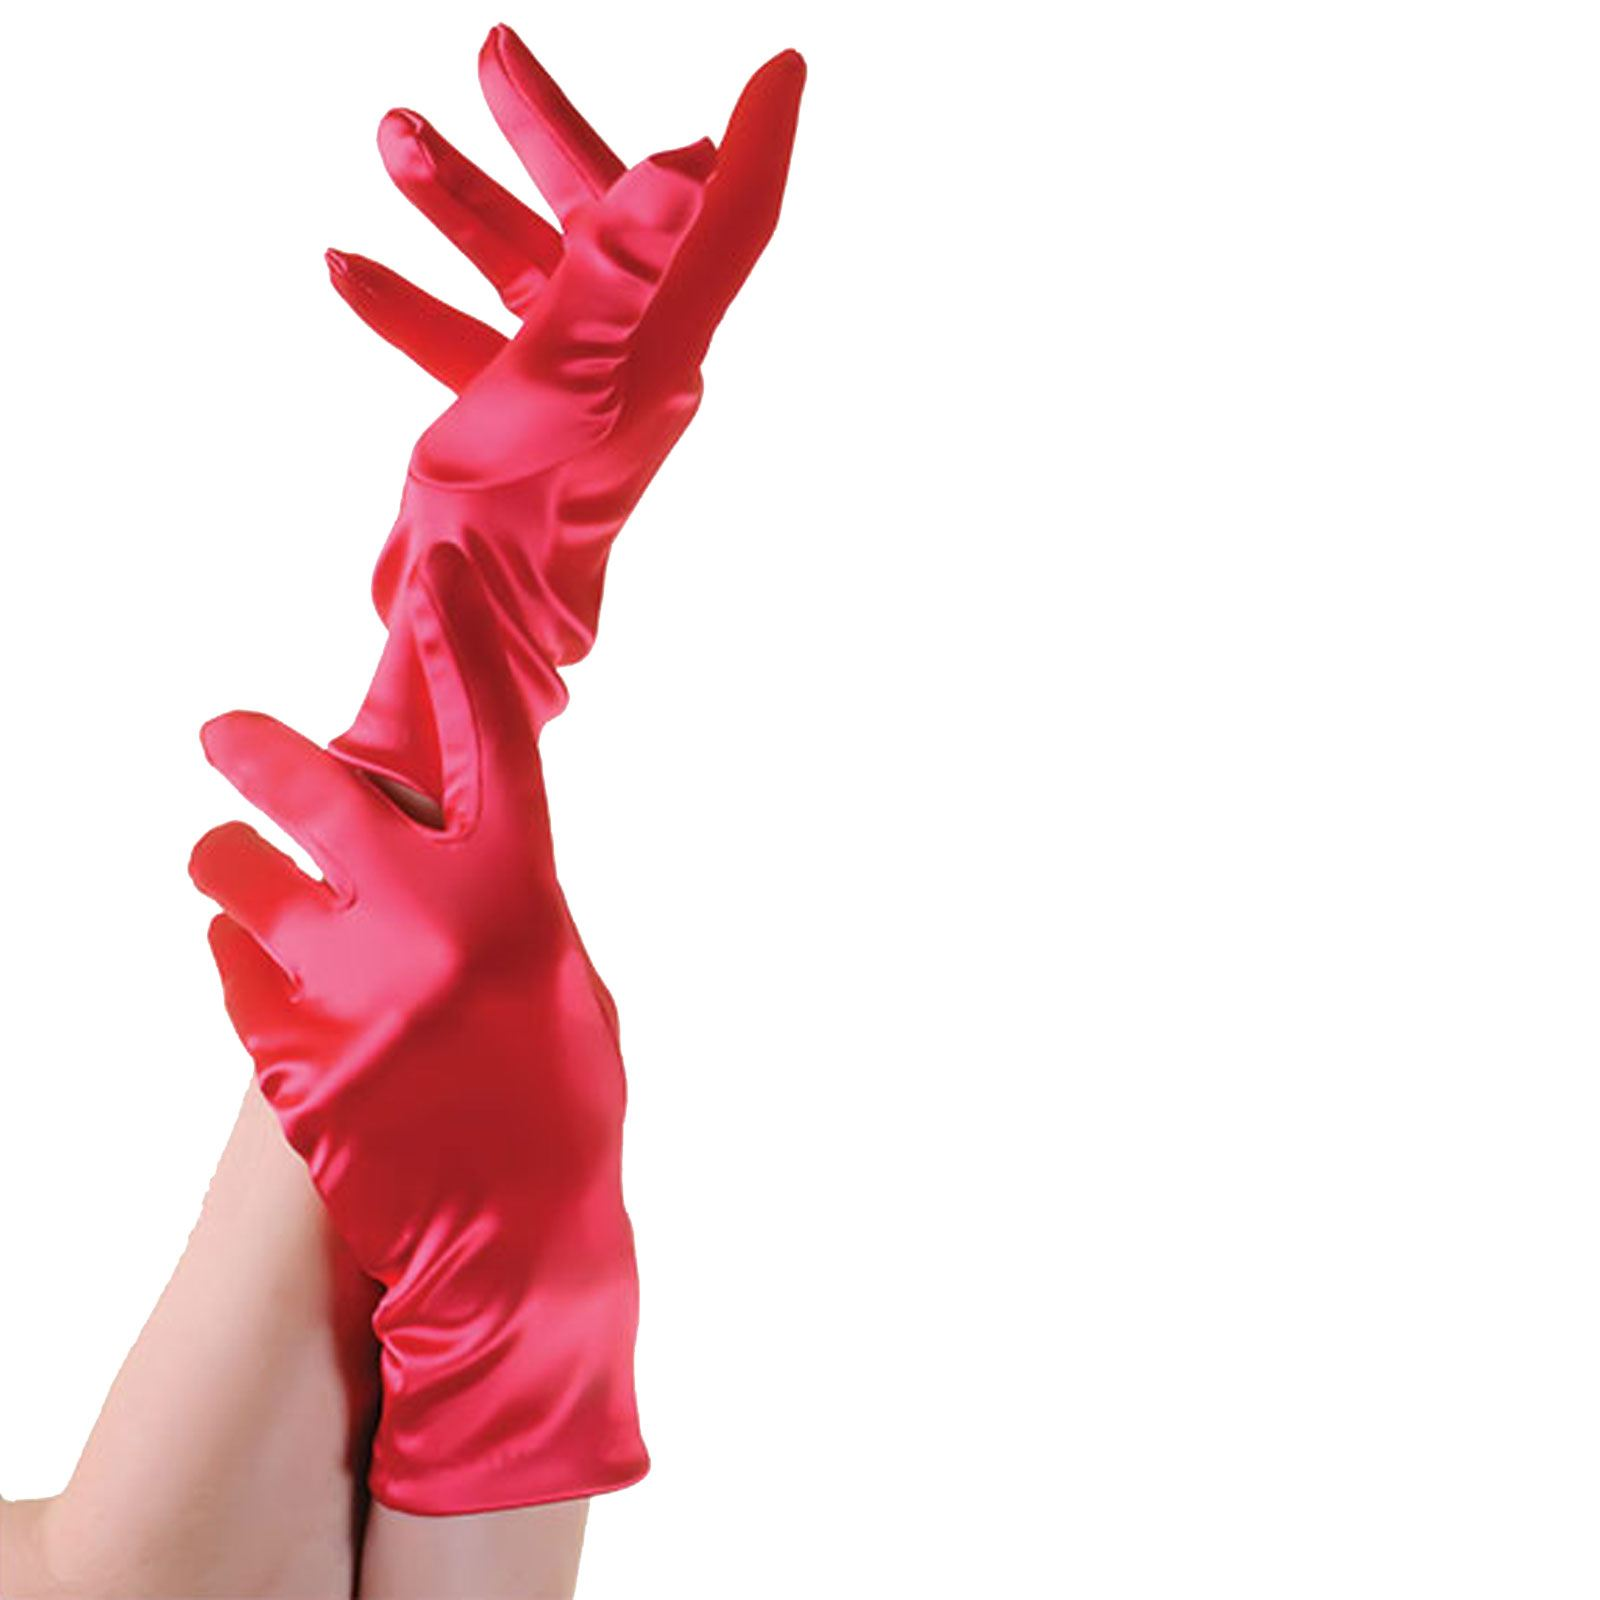 LADIES-WOMENS-SATIN-GLOVES-WEDDING-BRIDAL-MAID-PROM-HEN-NIGHT-FANCY-PARTY-DRESS